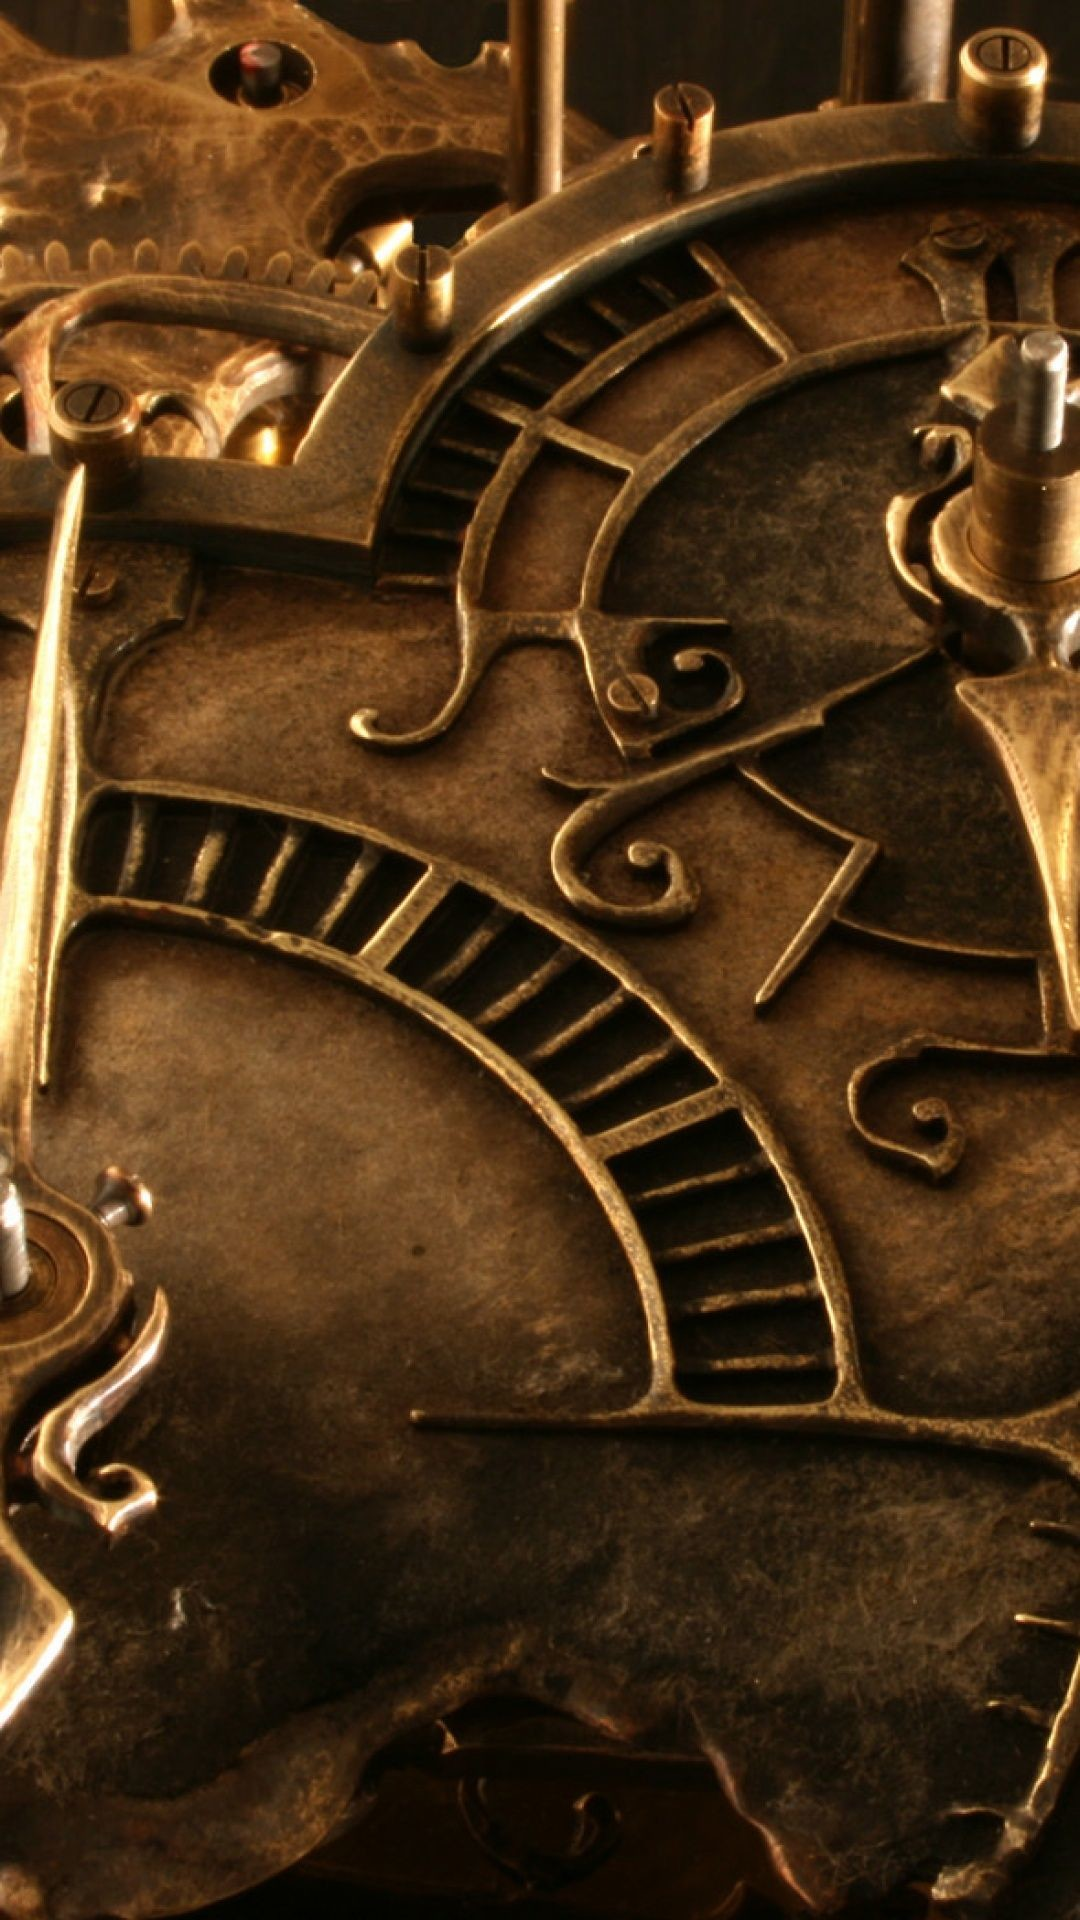 Iphone Steampunk Wallpaper 72 Images